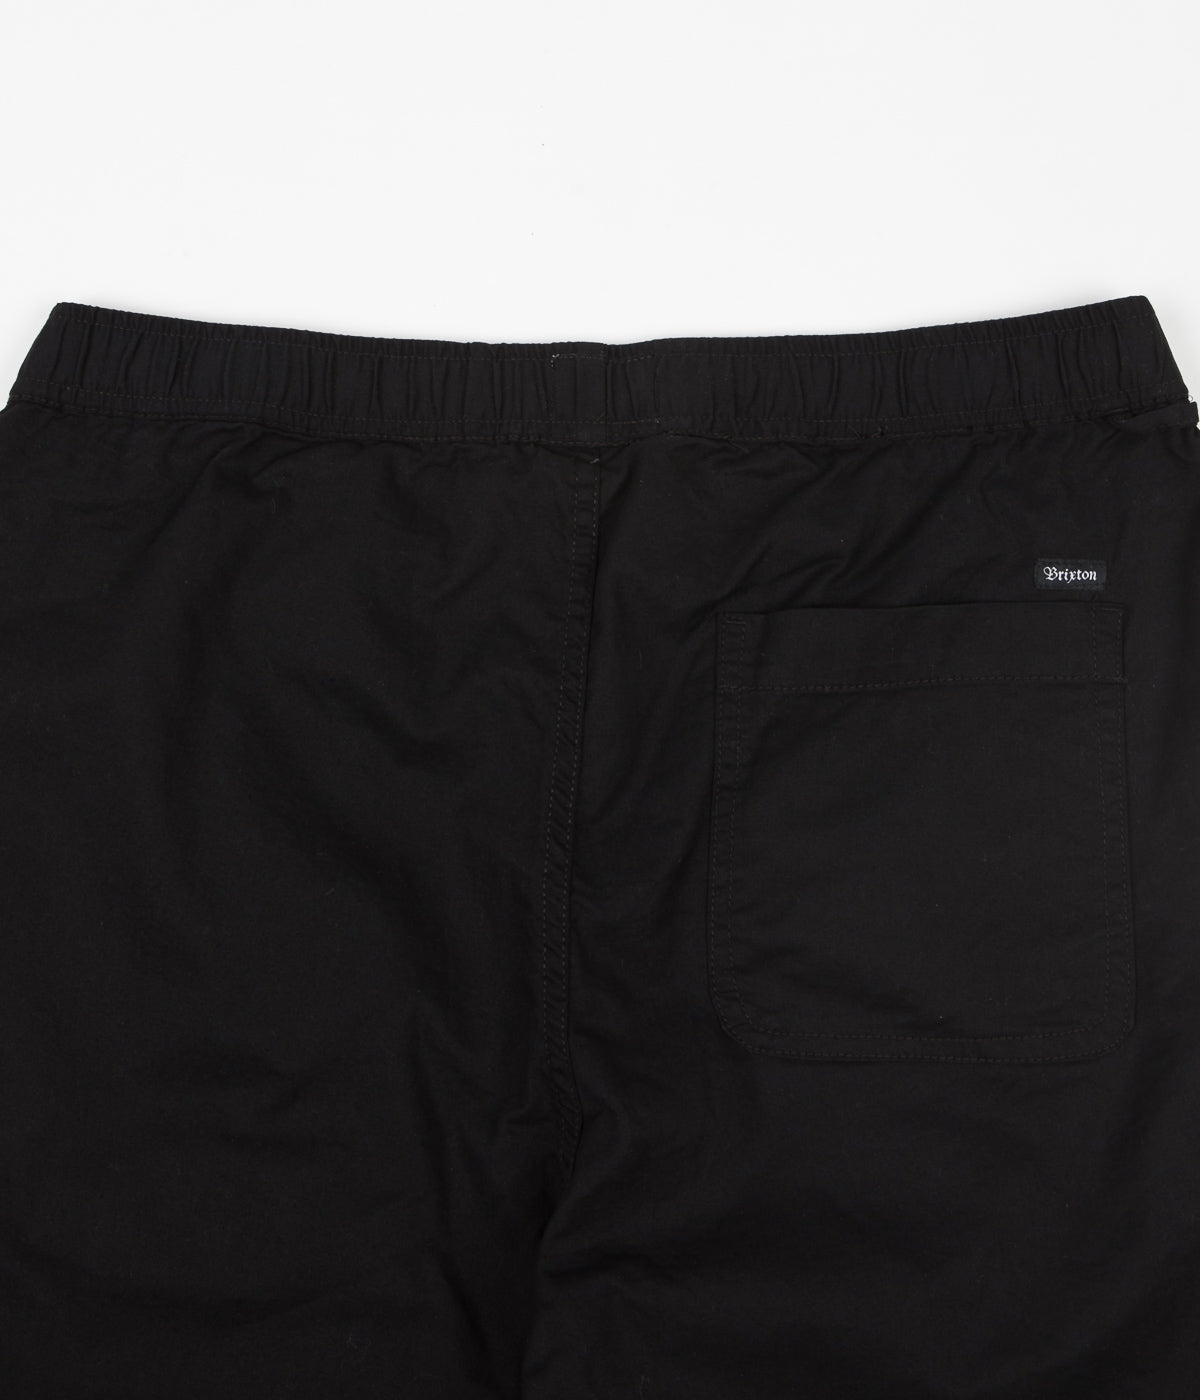 Brixton Steady Shorts - Black